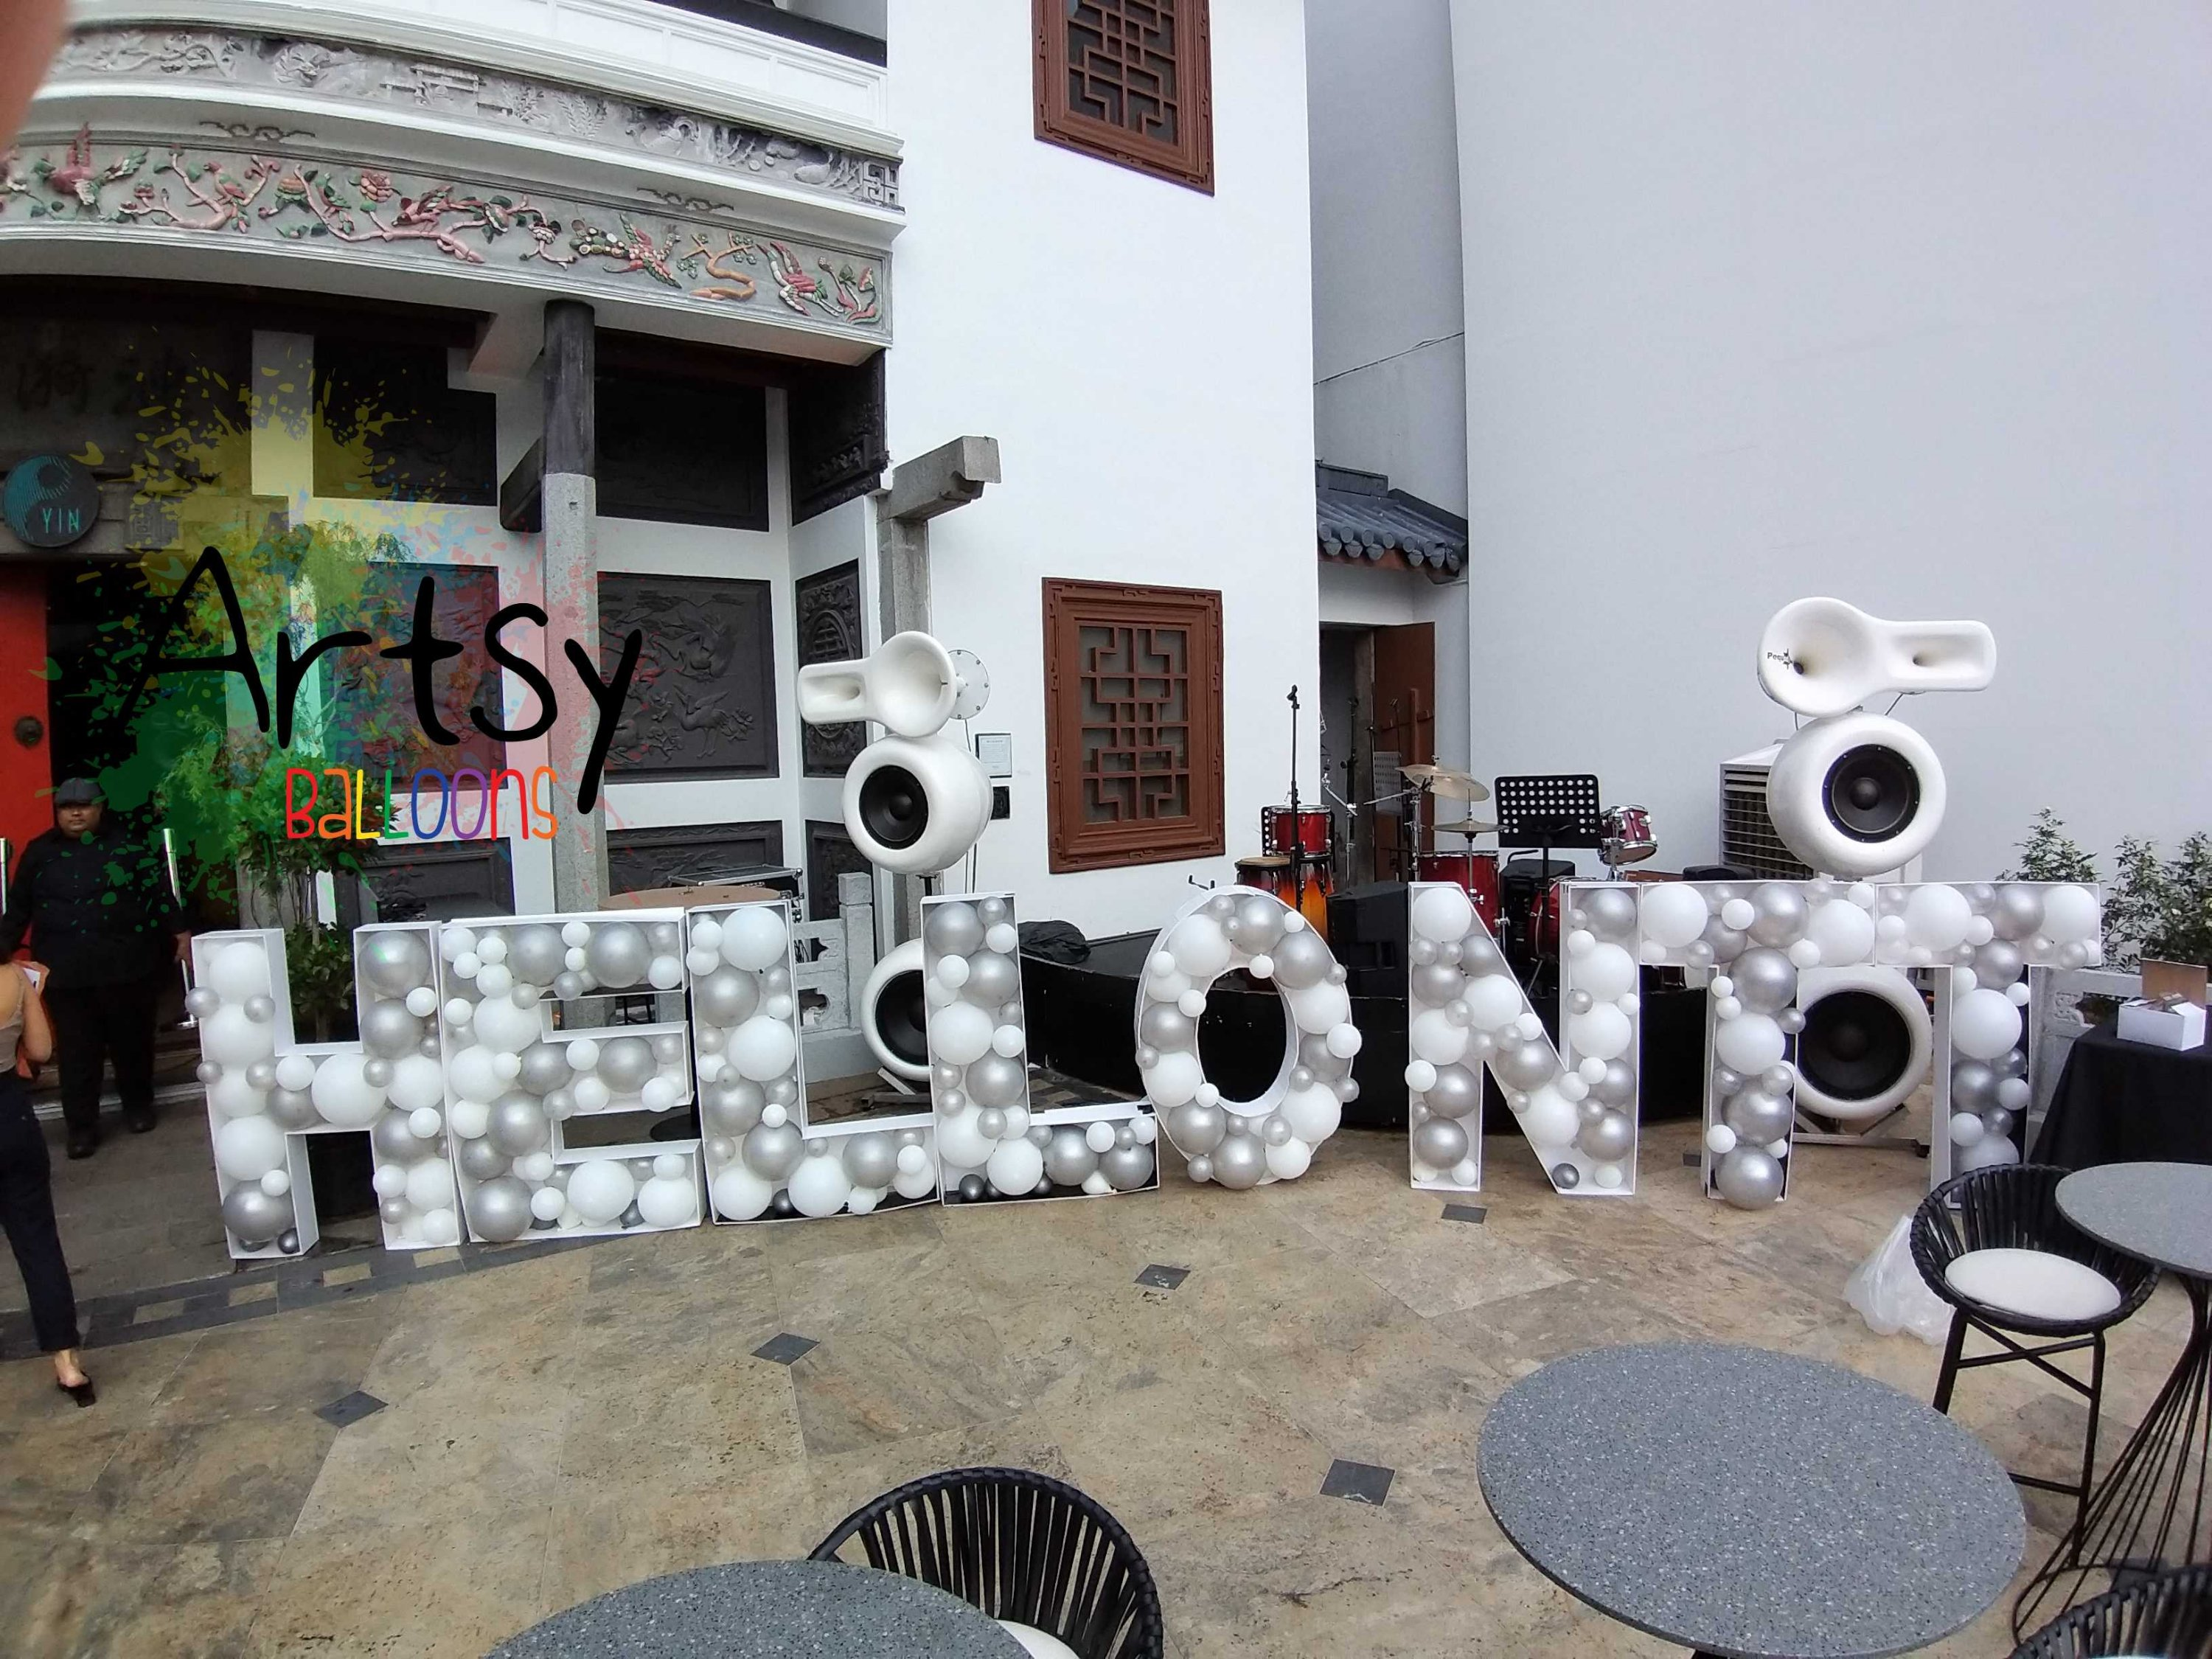 , Marquee Balloon Alphabets, Singapore Balloon Decoration Services - Balloon Workshop and Balloon Sculpting